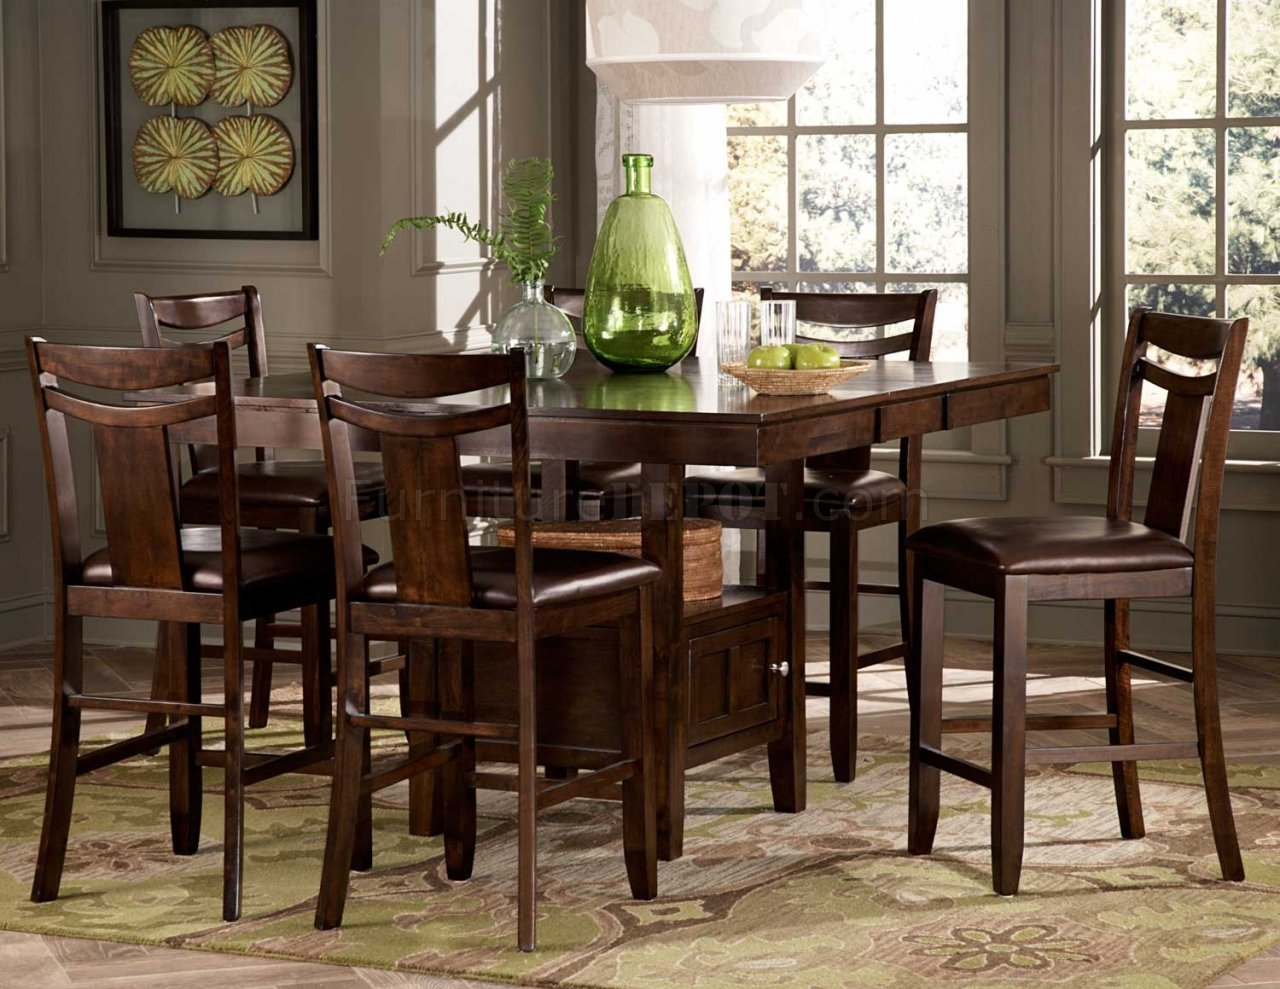 Broome 2524 36 counter height dining 5pc set by homelegance for Counter height dining set